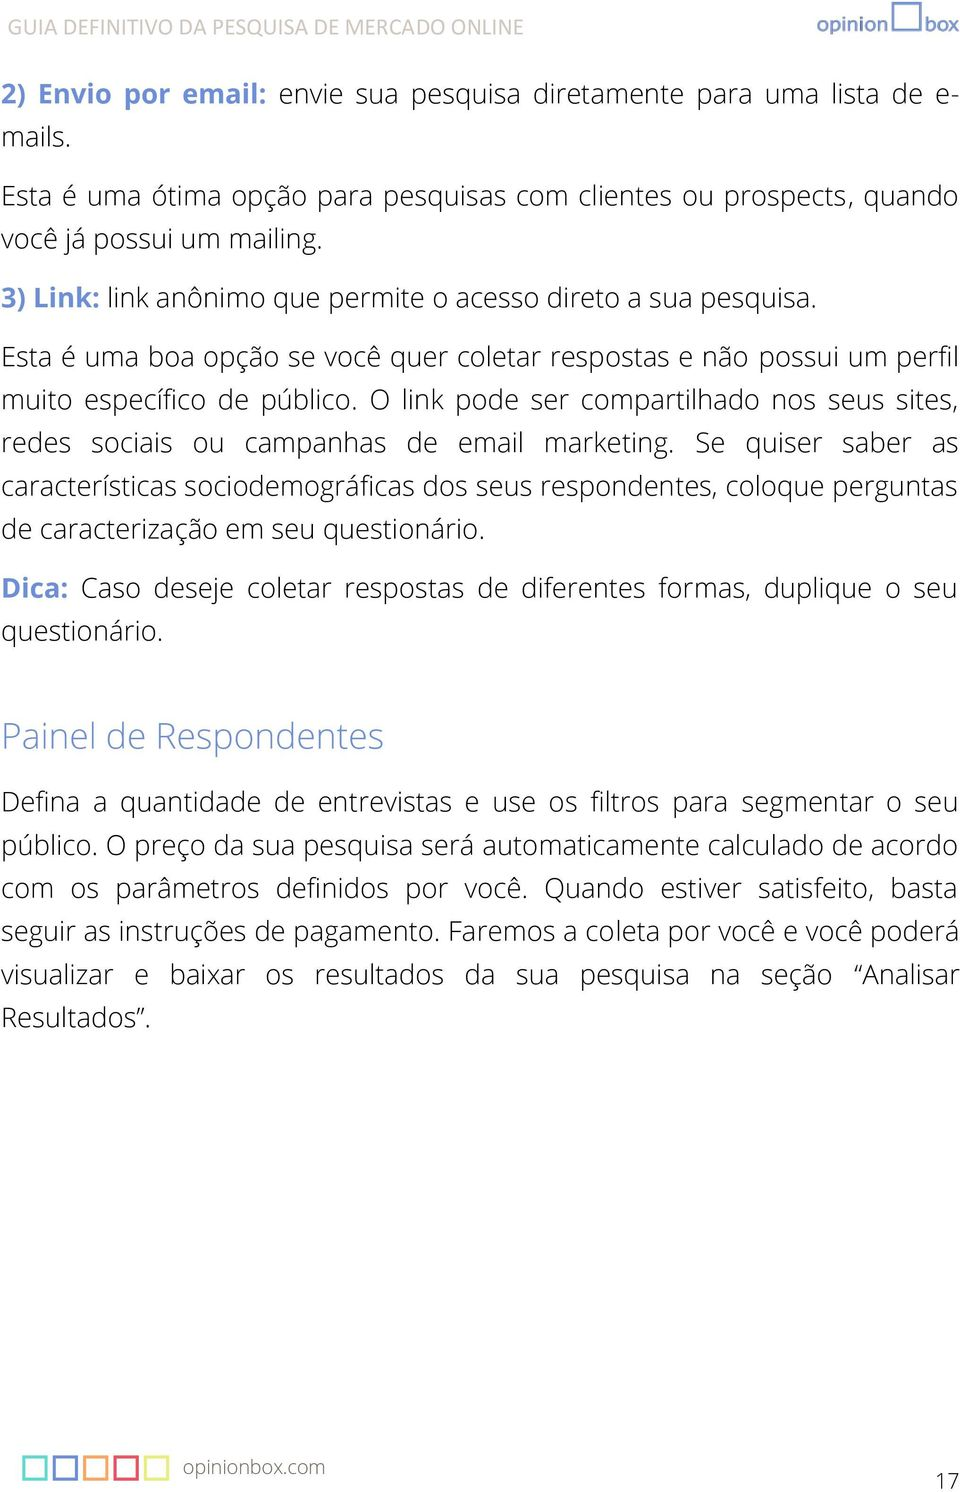 O link pode ser compartilhado nos seus sites, redes sociais ou campanhas de email marketing.